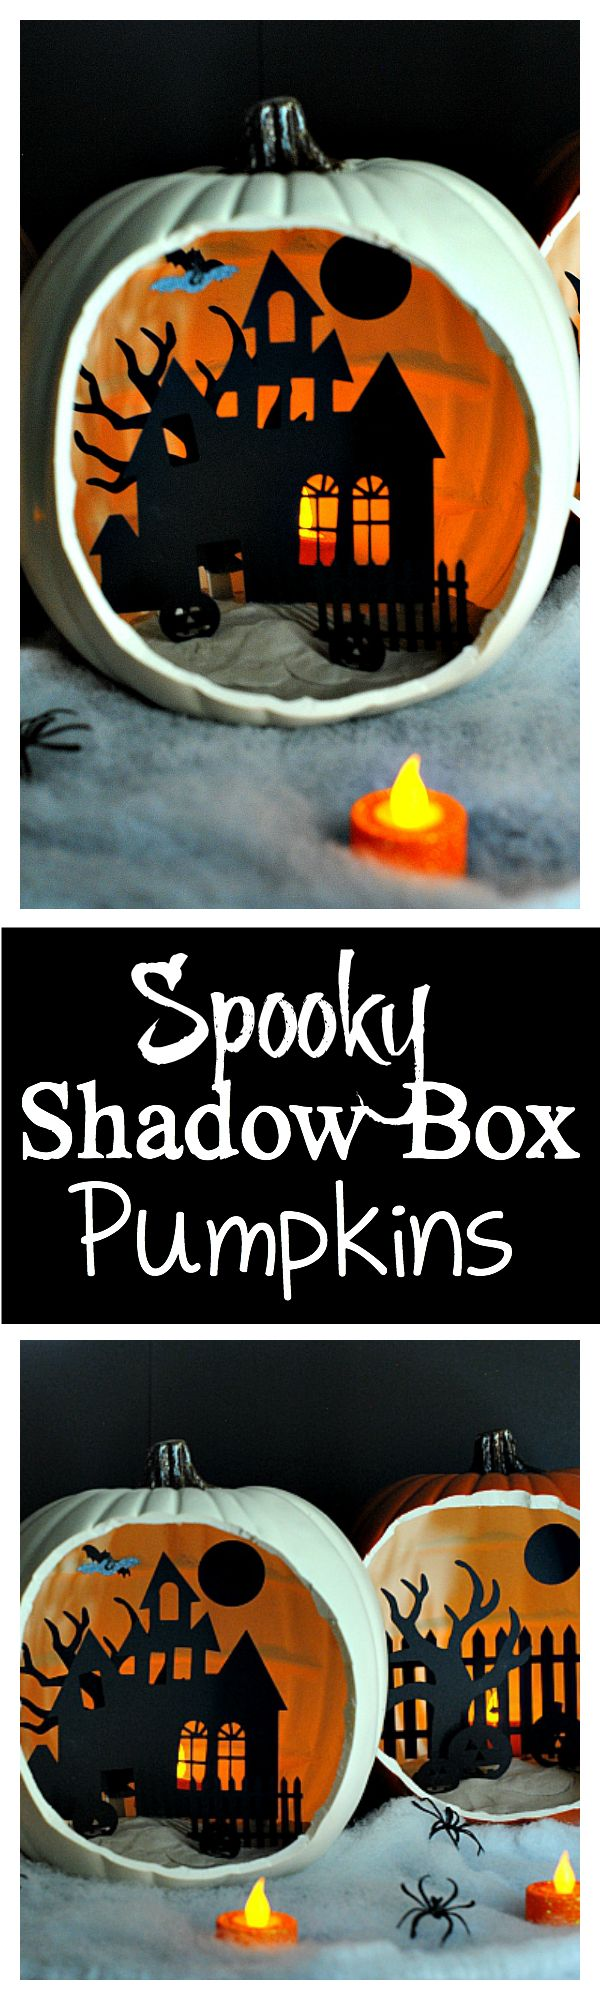 Great Halloween Decoration-Shadow Box Pumpkins